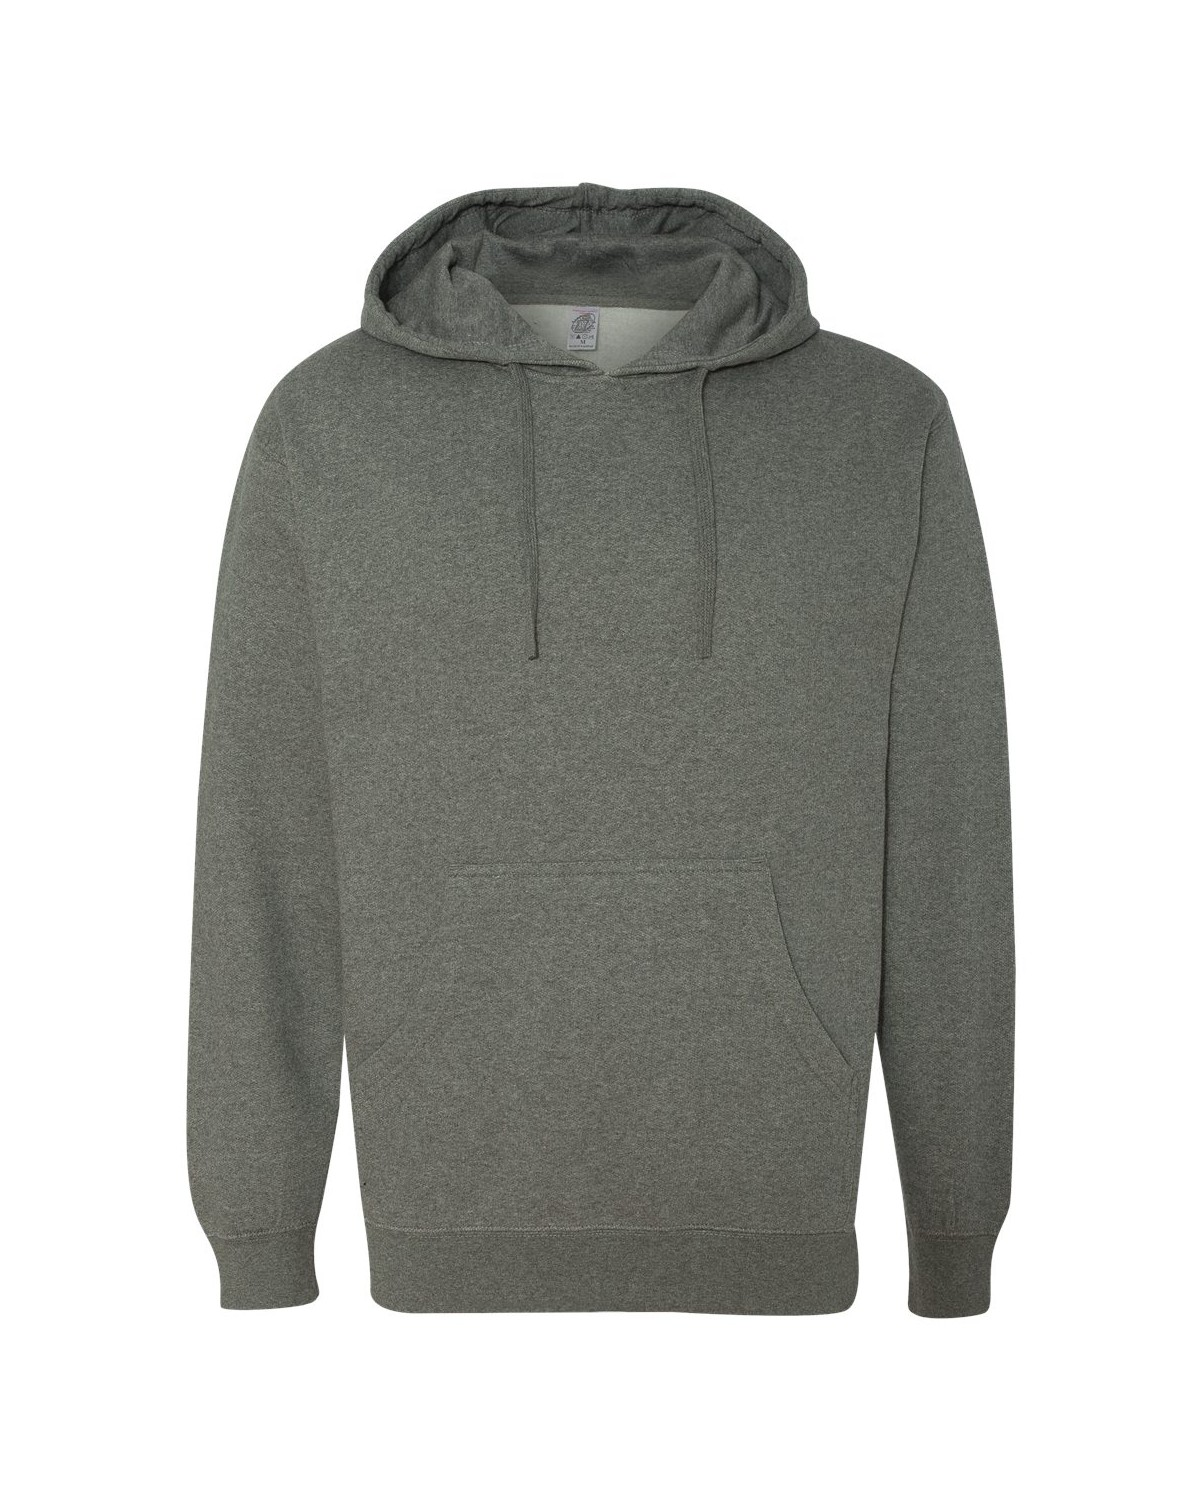 SS4500 Independent Trading Co. Gunmetal Heather